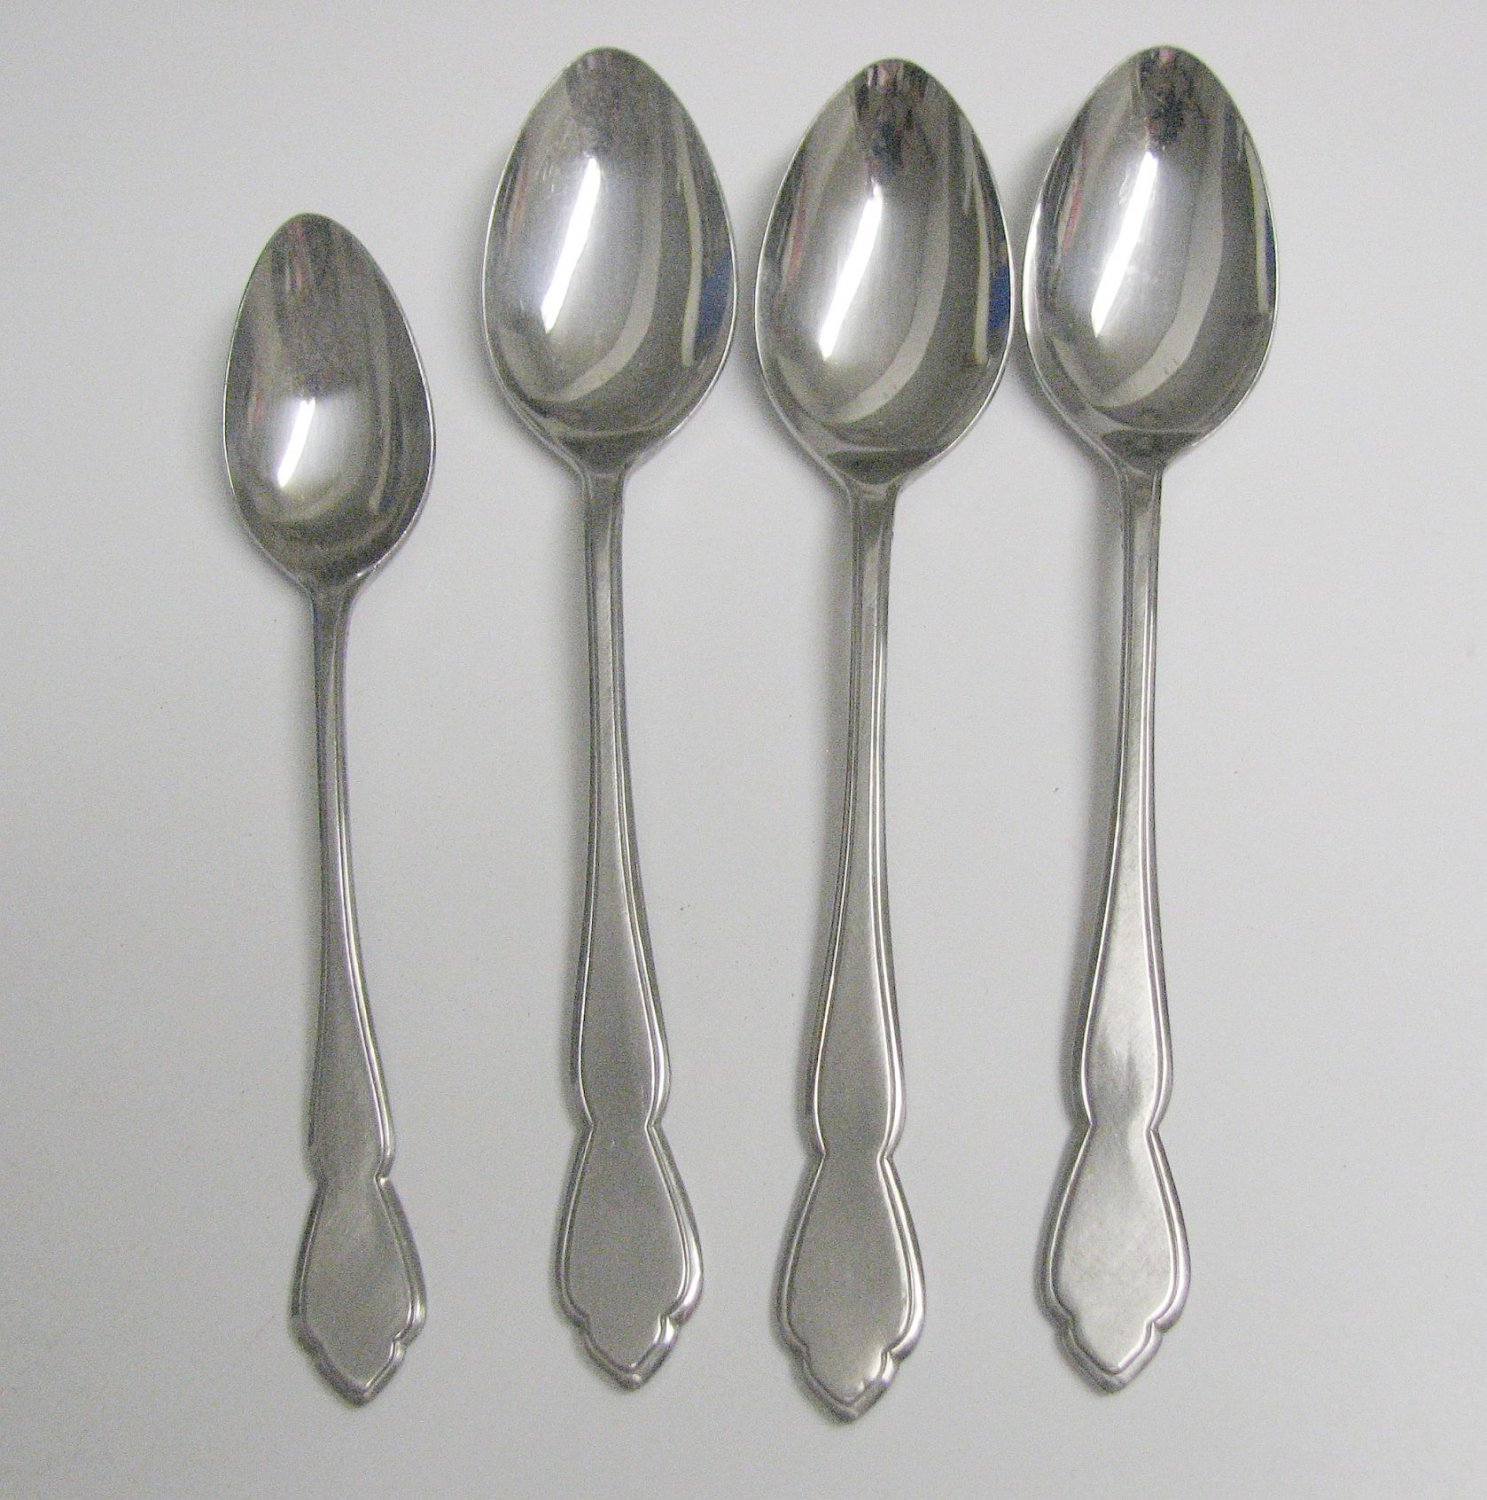 4 Spoons Oxford Hall Stainless Flatware Shoreham Free Shipping